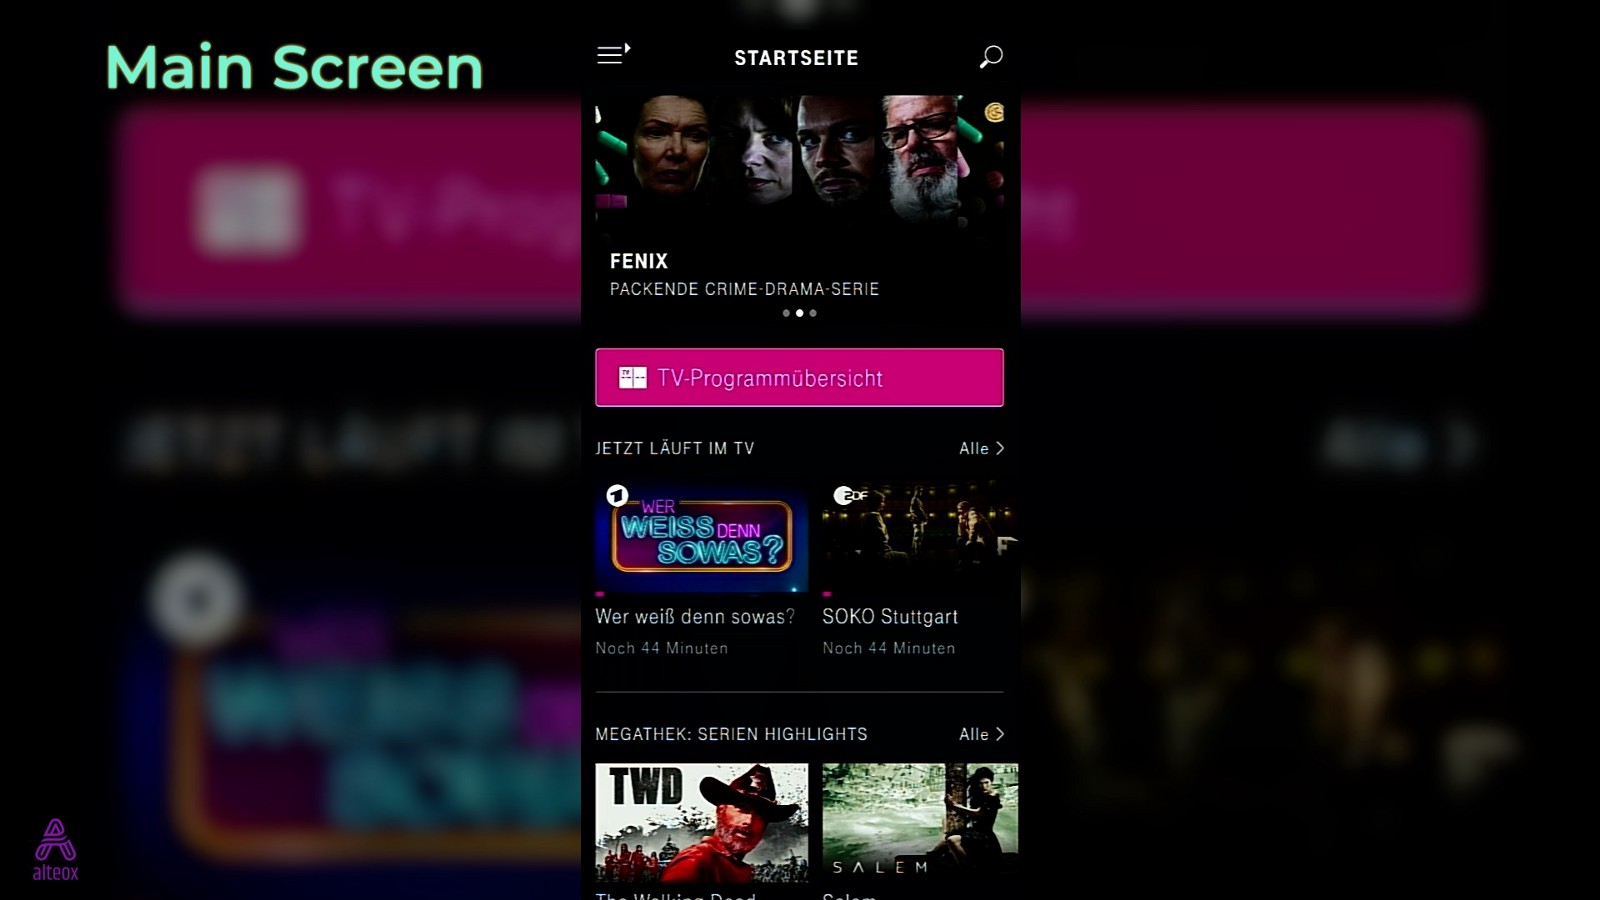 Alle Serien Online Magentatv App Walkthrough Alteox Medium